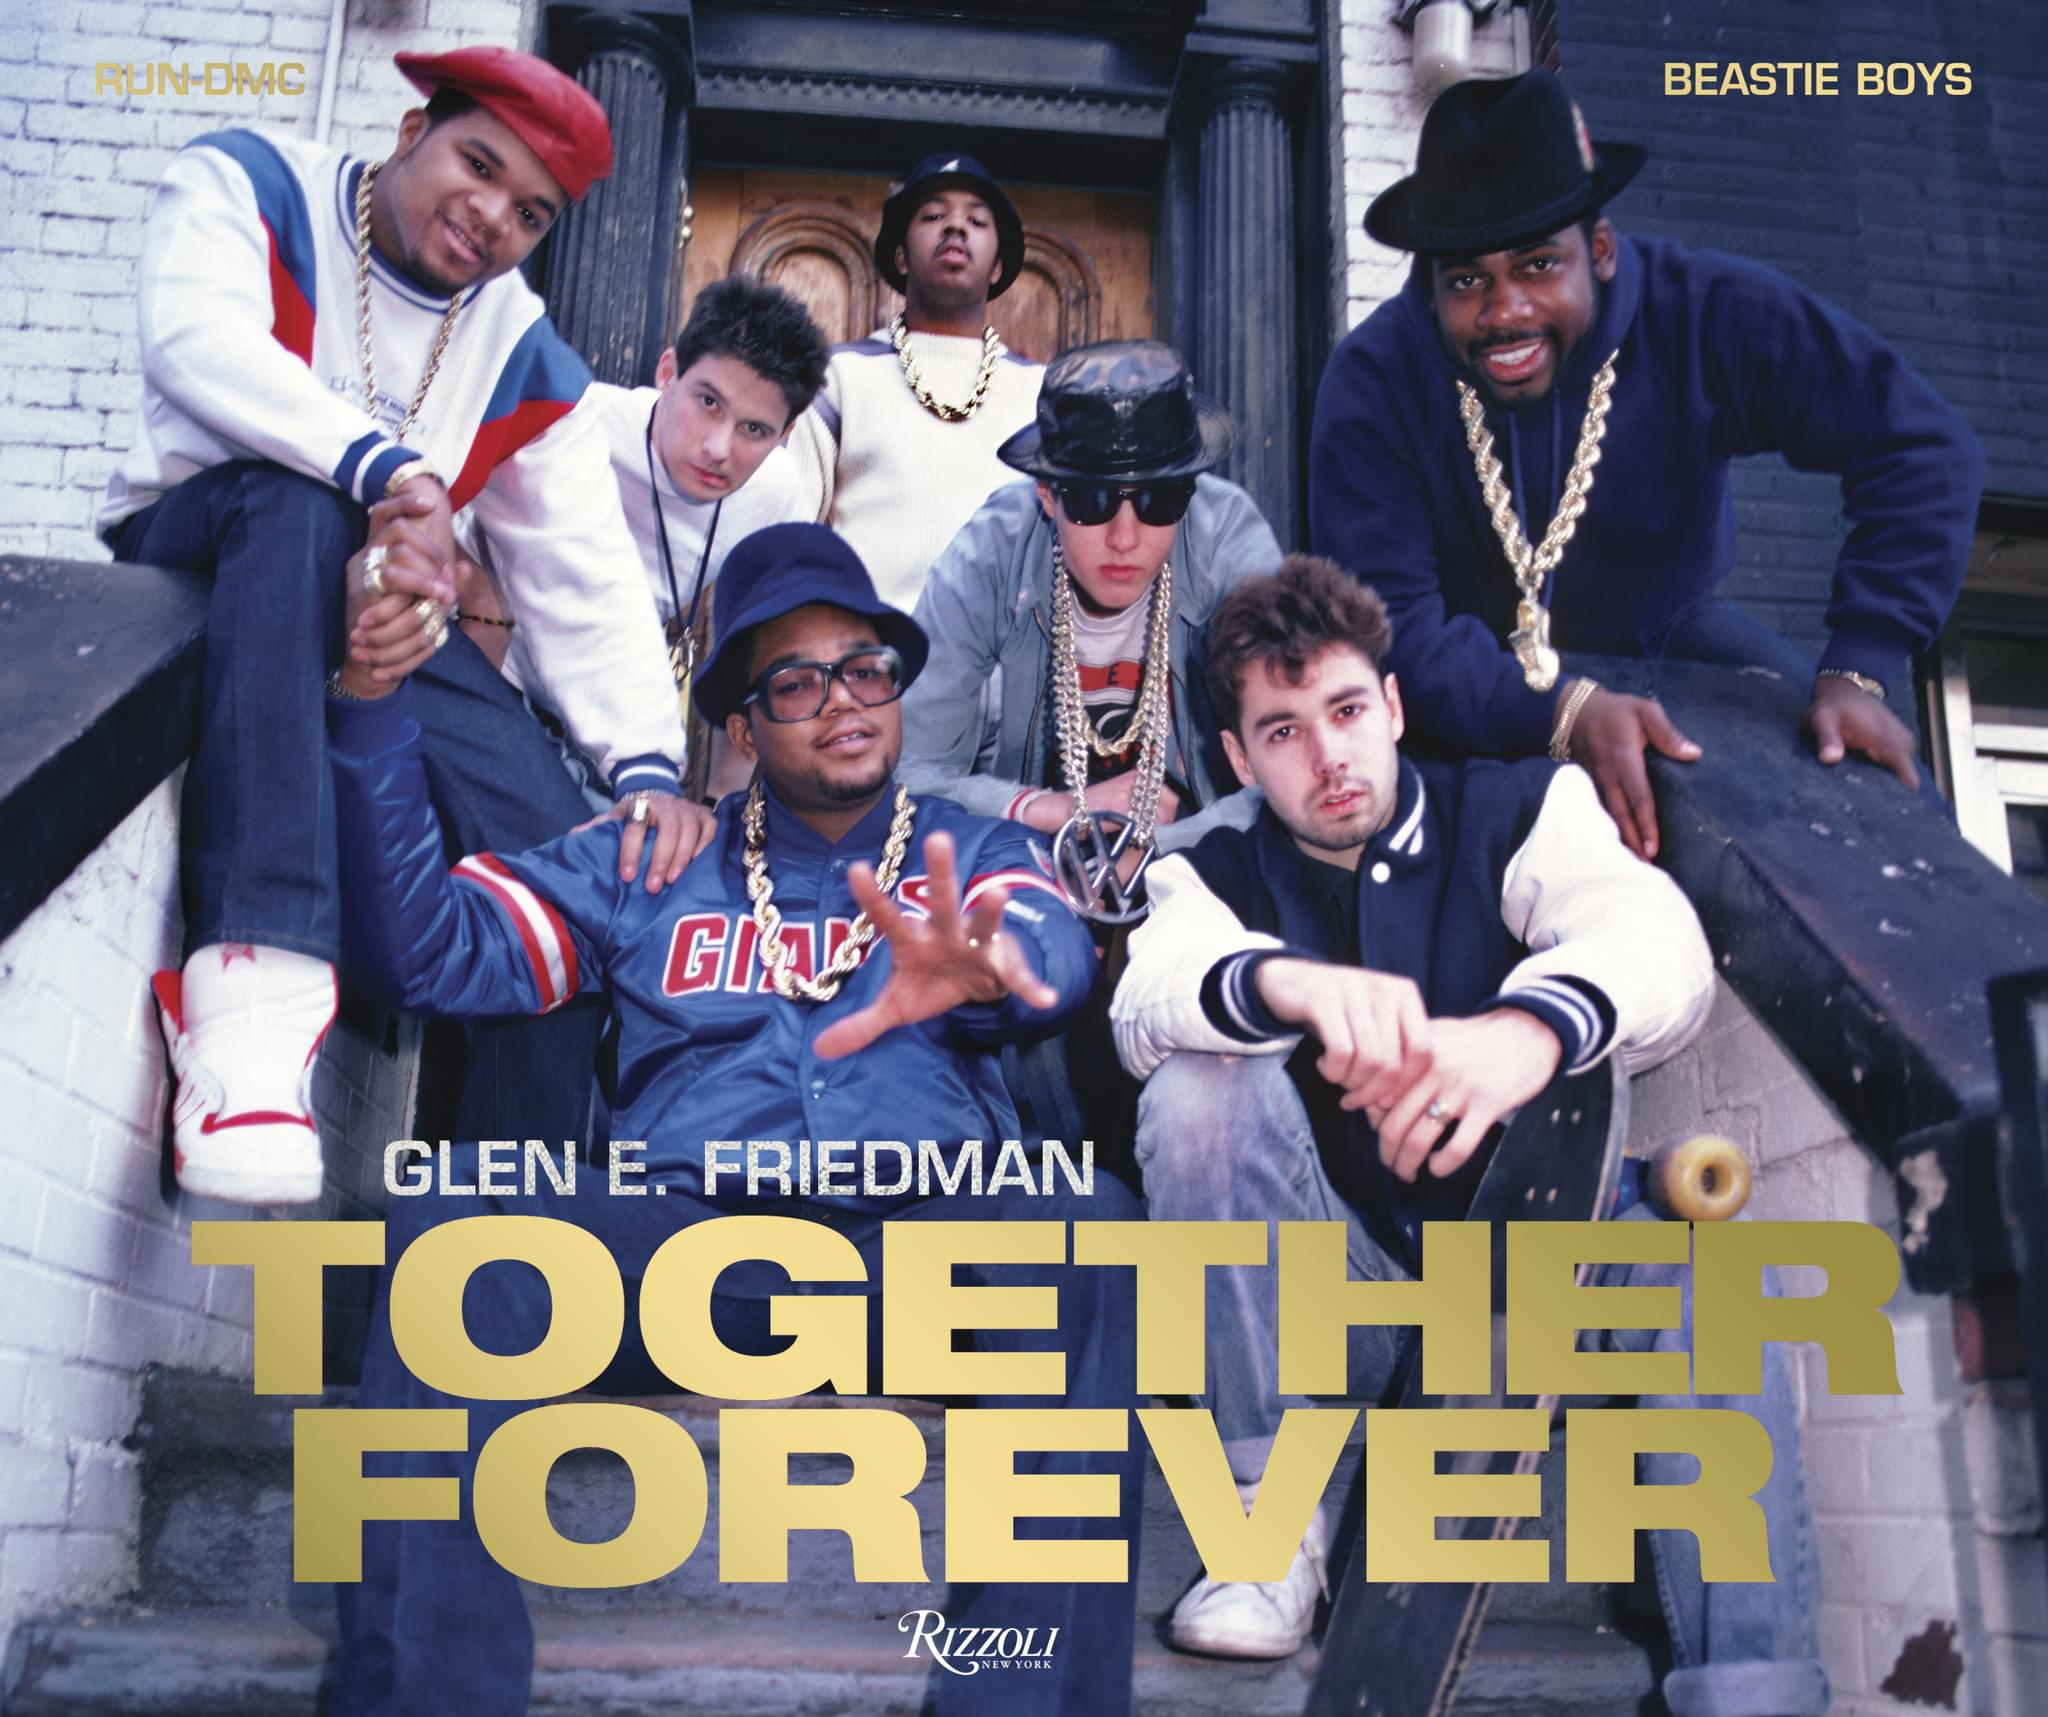 TOGETHER FOREVER: Run-DMC and Beastie Boys [BOOK]